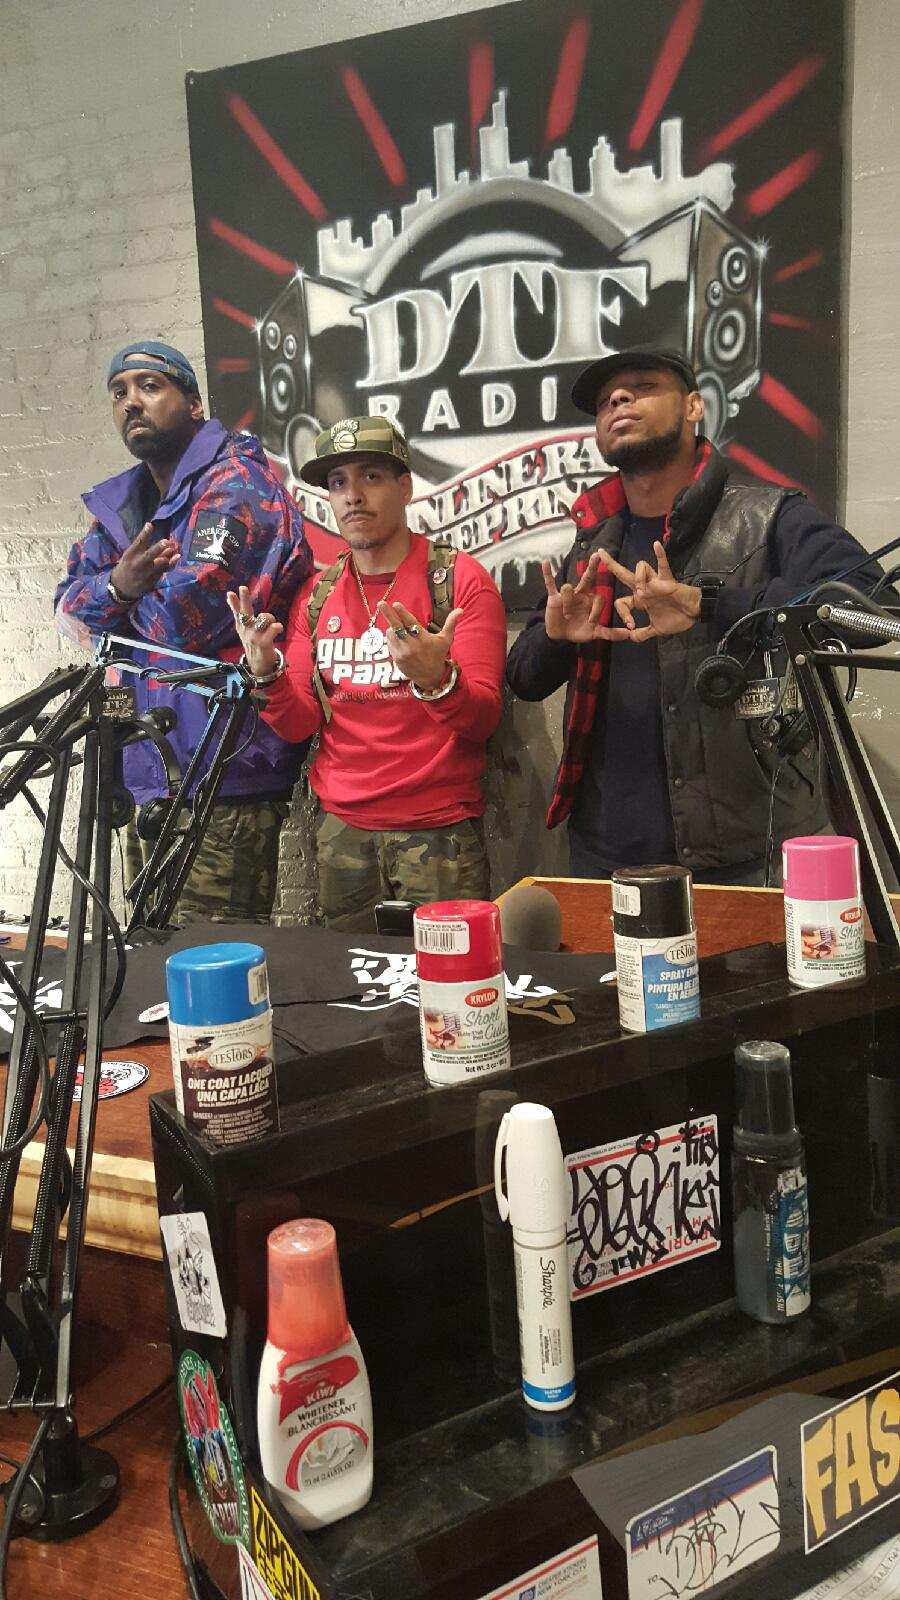 THE PREMIEREHIPHOP.COM SHOW featuring SAV KILLZ & FRANK KNIGHT